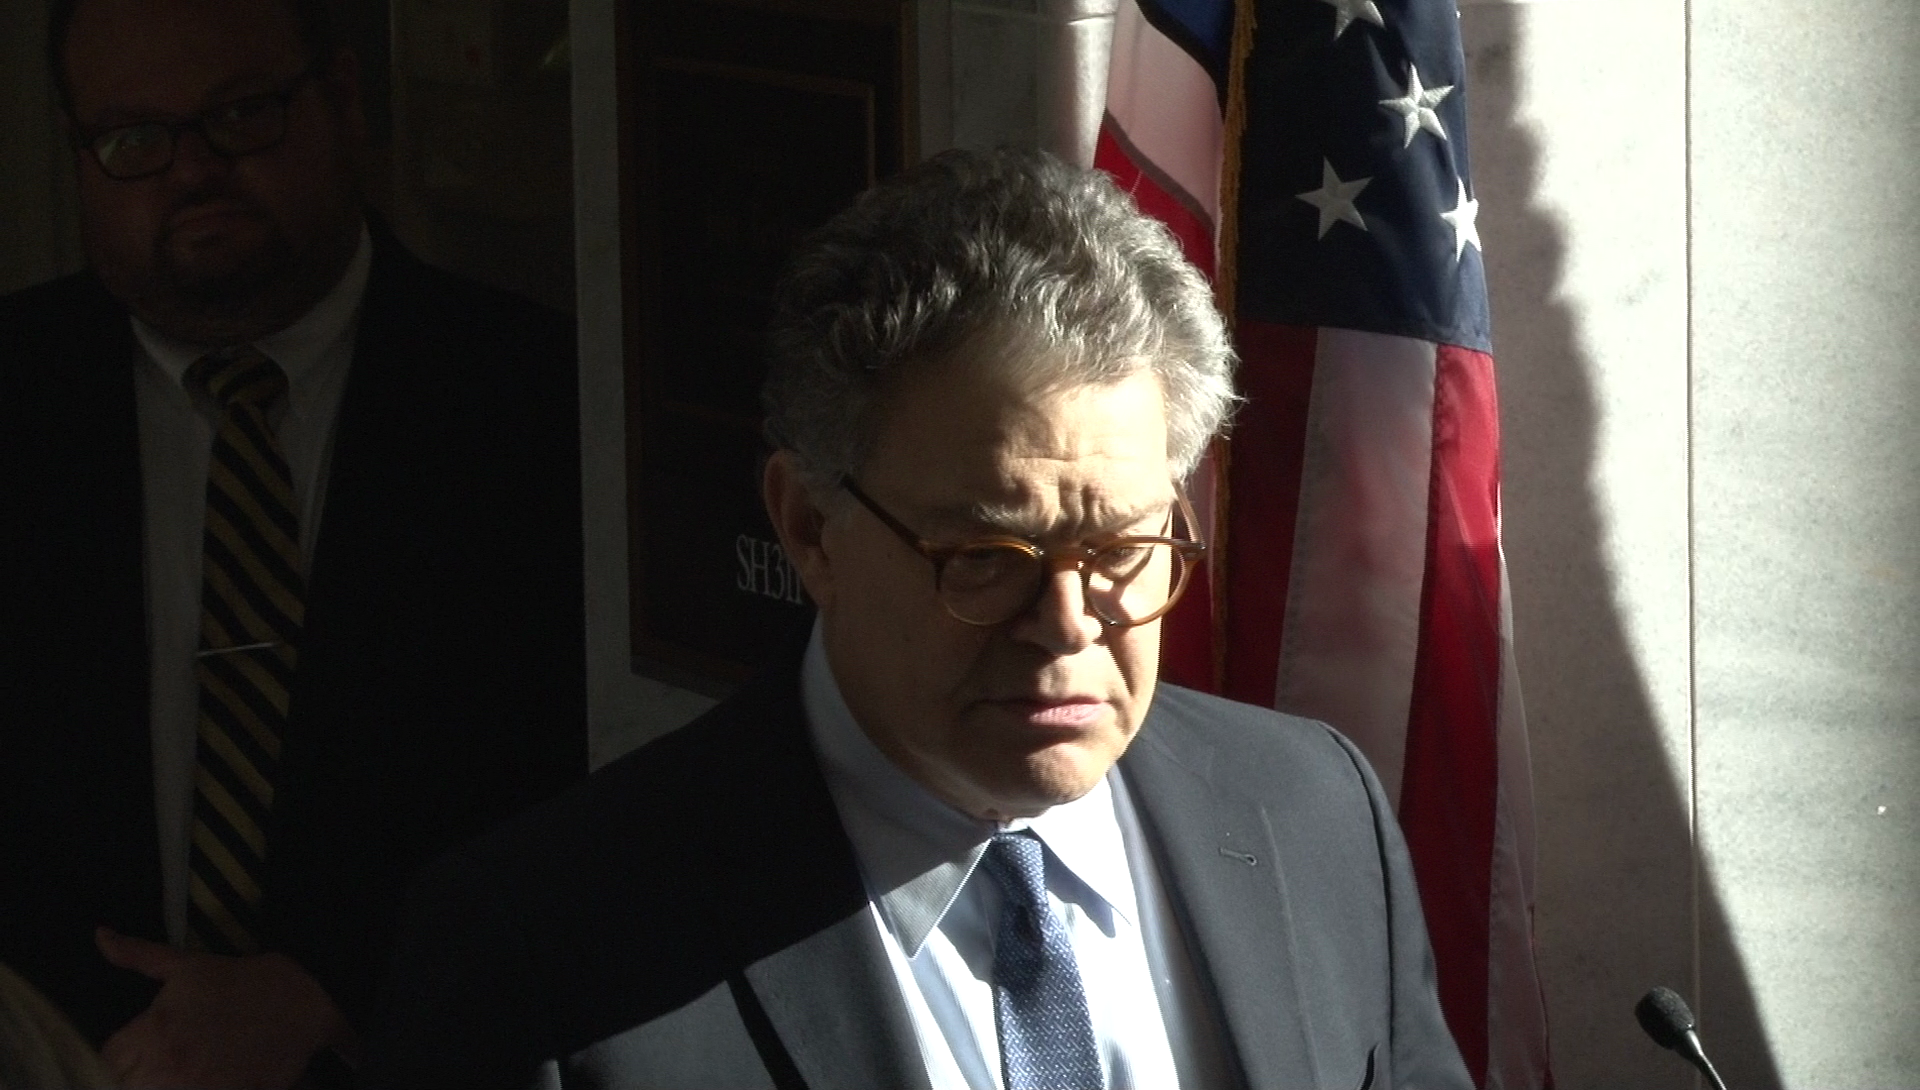 Sen. Al Franken, D-Minn., holds a press briefing in Washington, Monday, Nov. 27, 2017. (Sinclair Broadcast Group/Paul Courson)